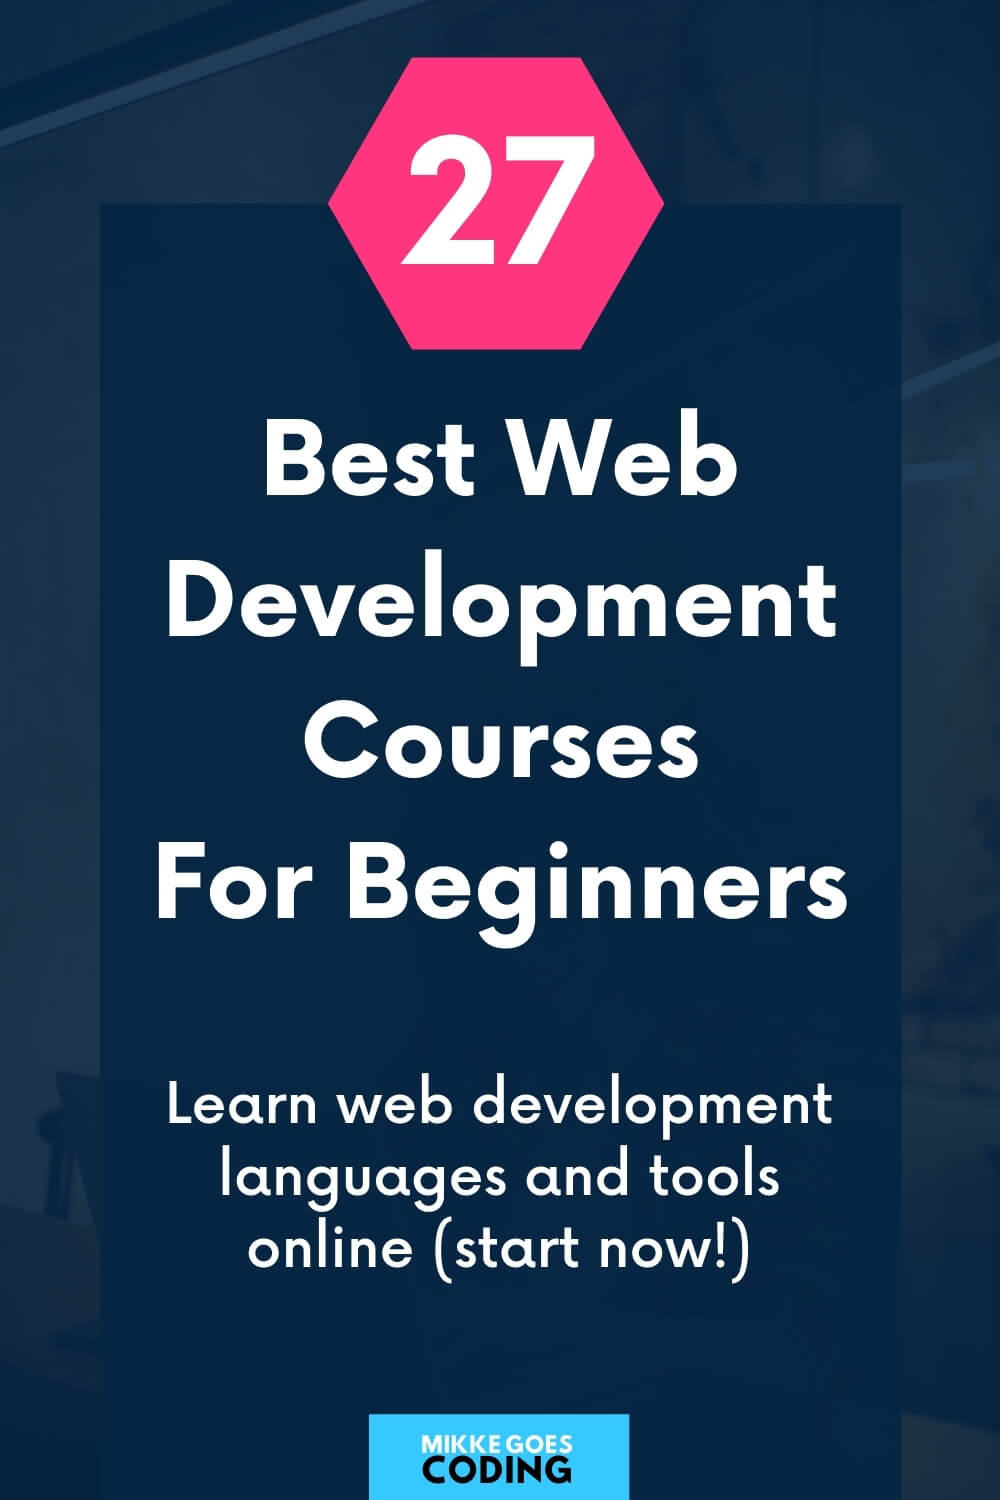 The best web development courses for beginners